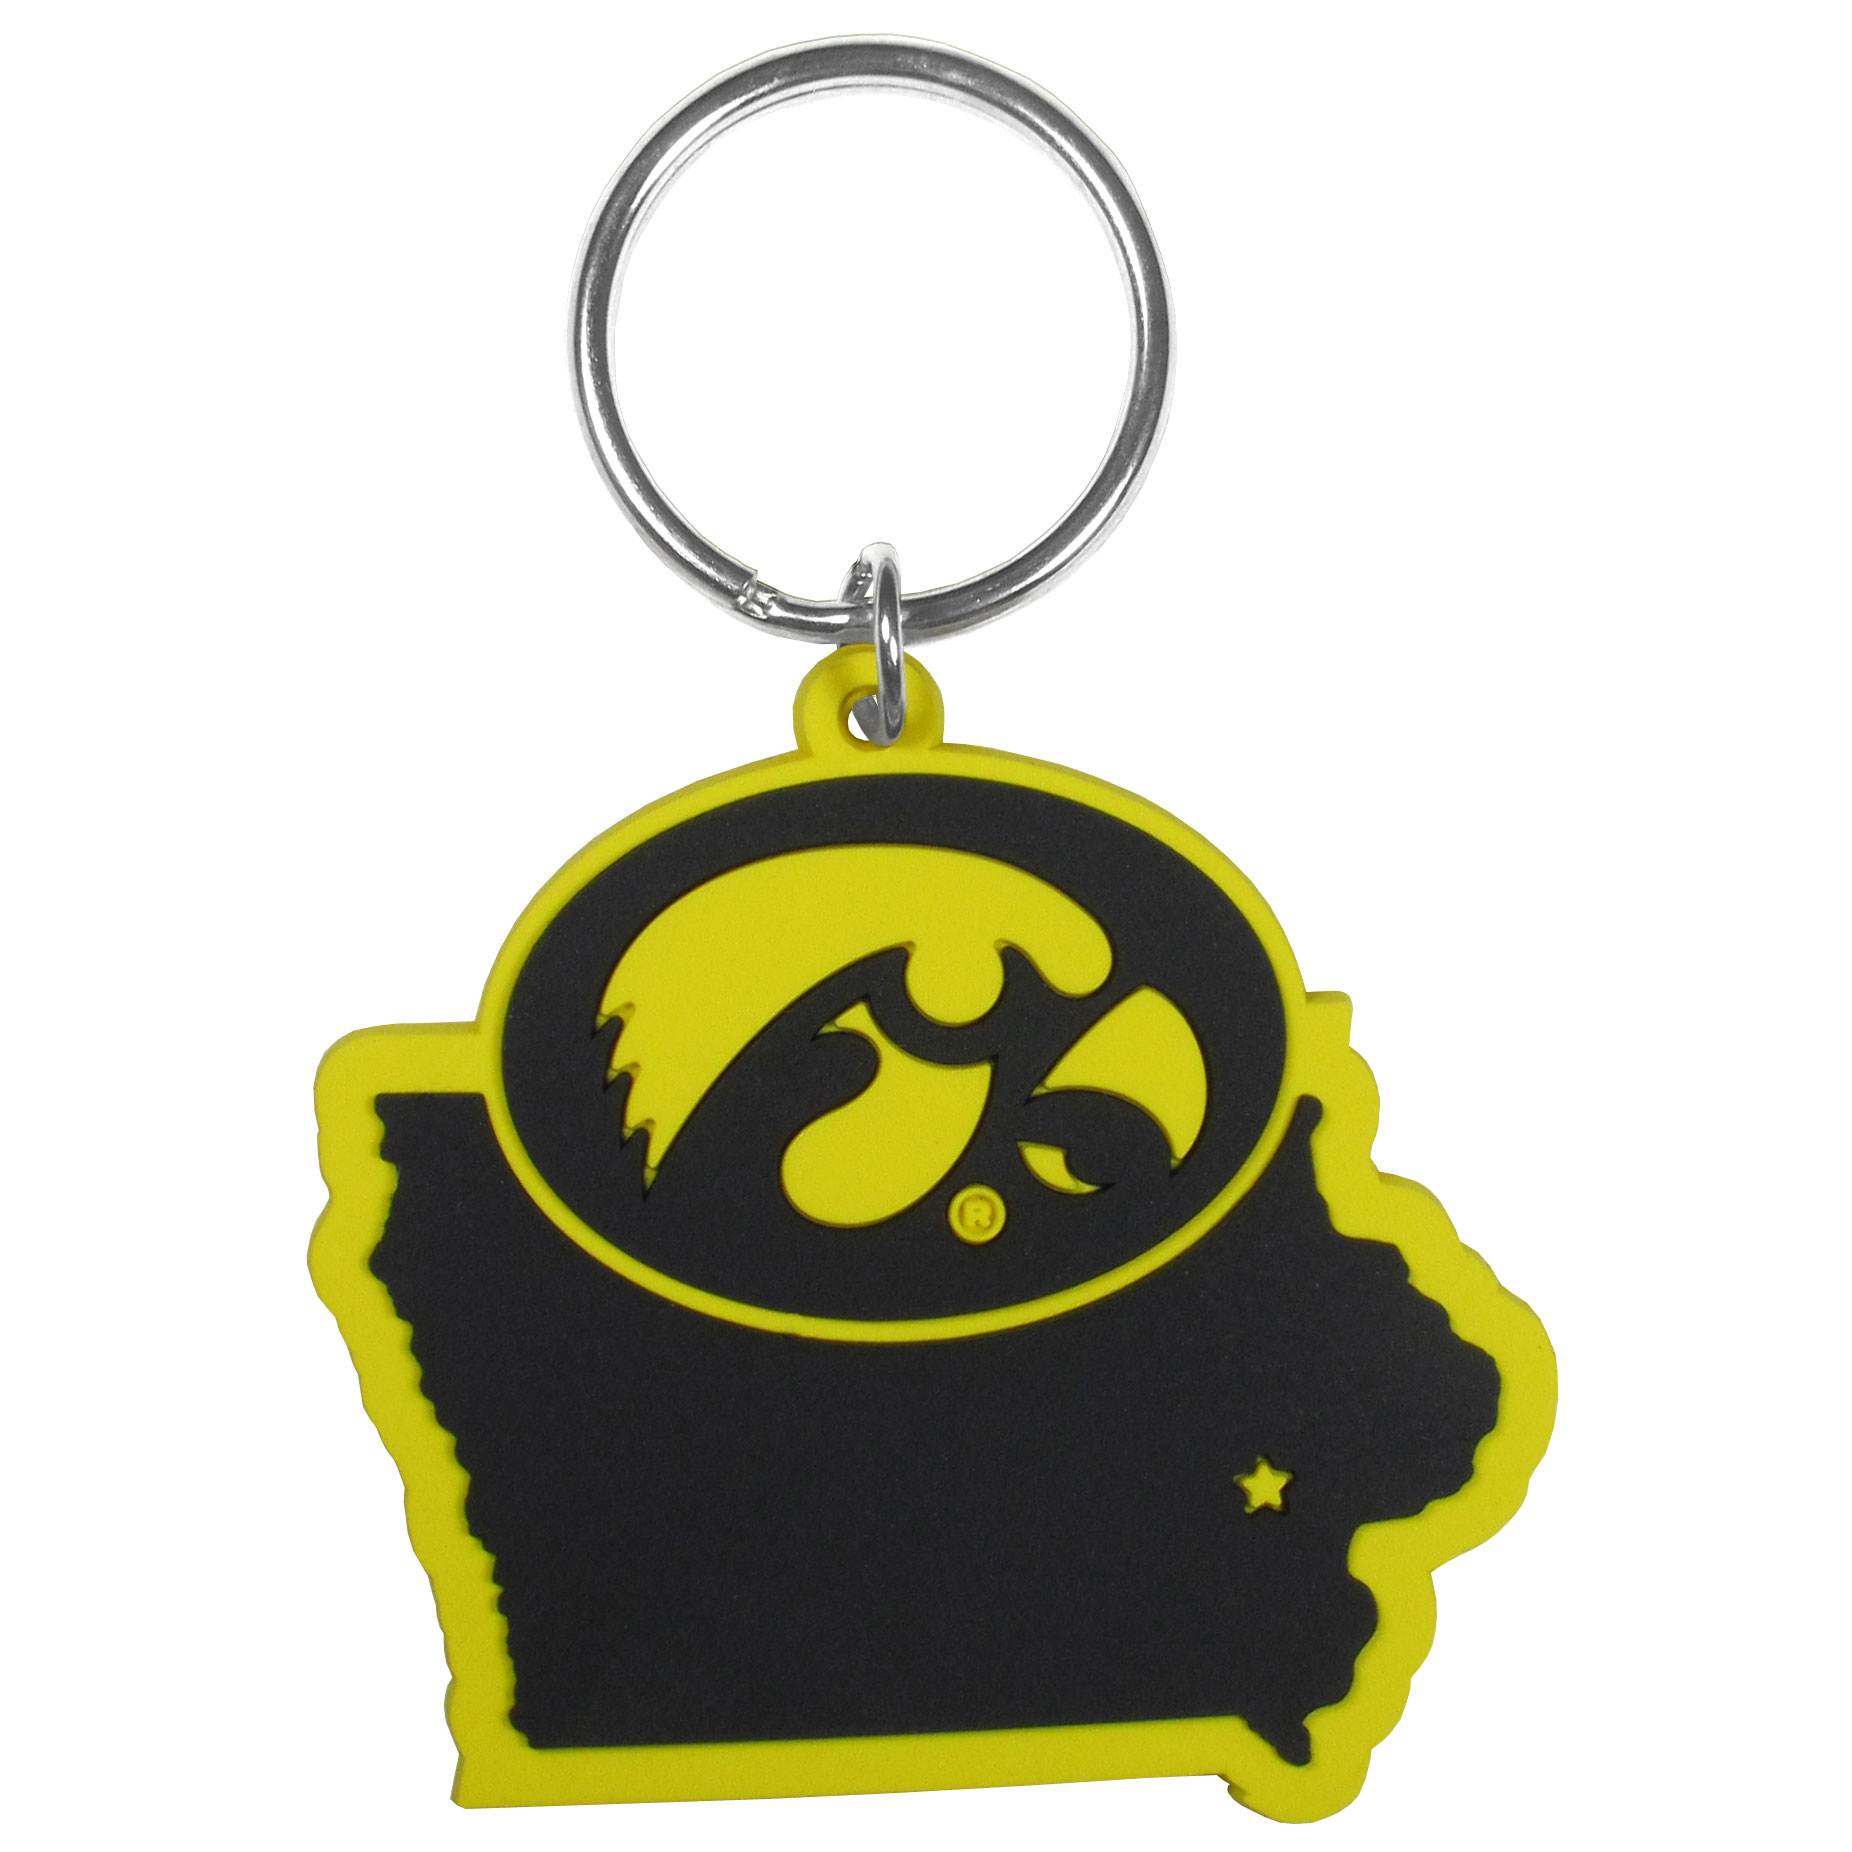 Iowa Hawkeyes Home State Flexi Key Chain - Our flexible Iowa Hawkeyes key chains are a fun way to carry your team with you. The pliable rubber material is extremely durable and the layered colors add a great 3D look to the key chain. This is really where quality and a great price meet to create a true fan favorite.